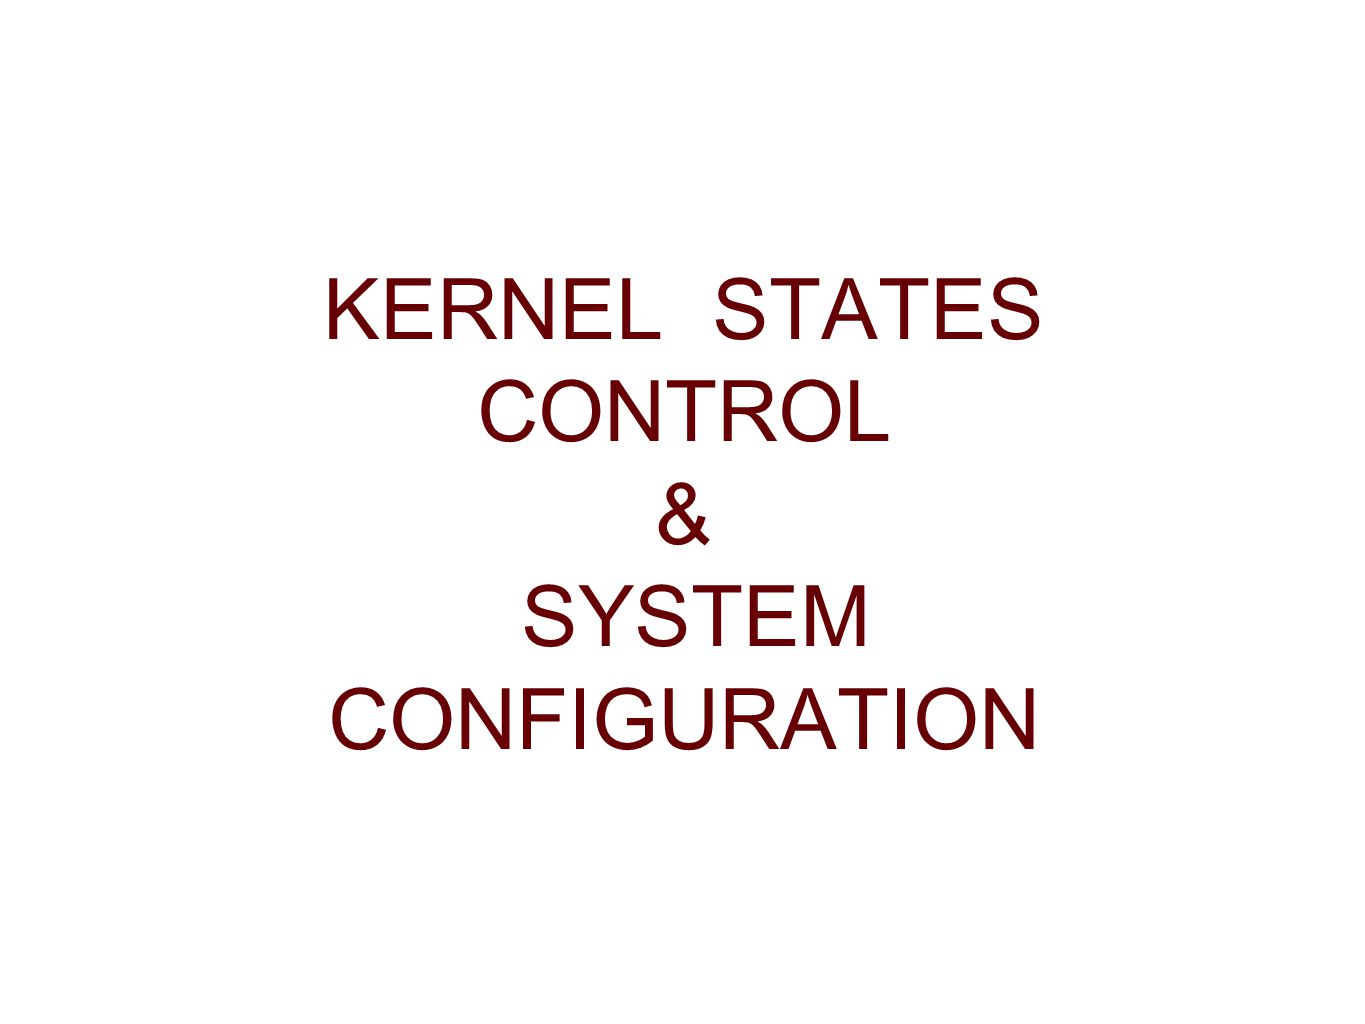 KERNEL STATES CONTROL & SYSTEM CONFIGURATION